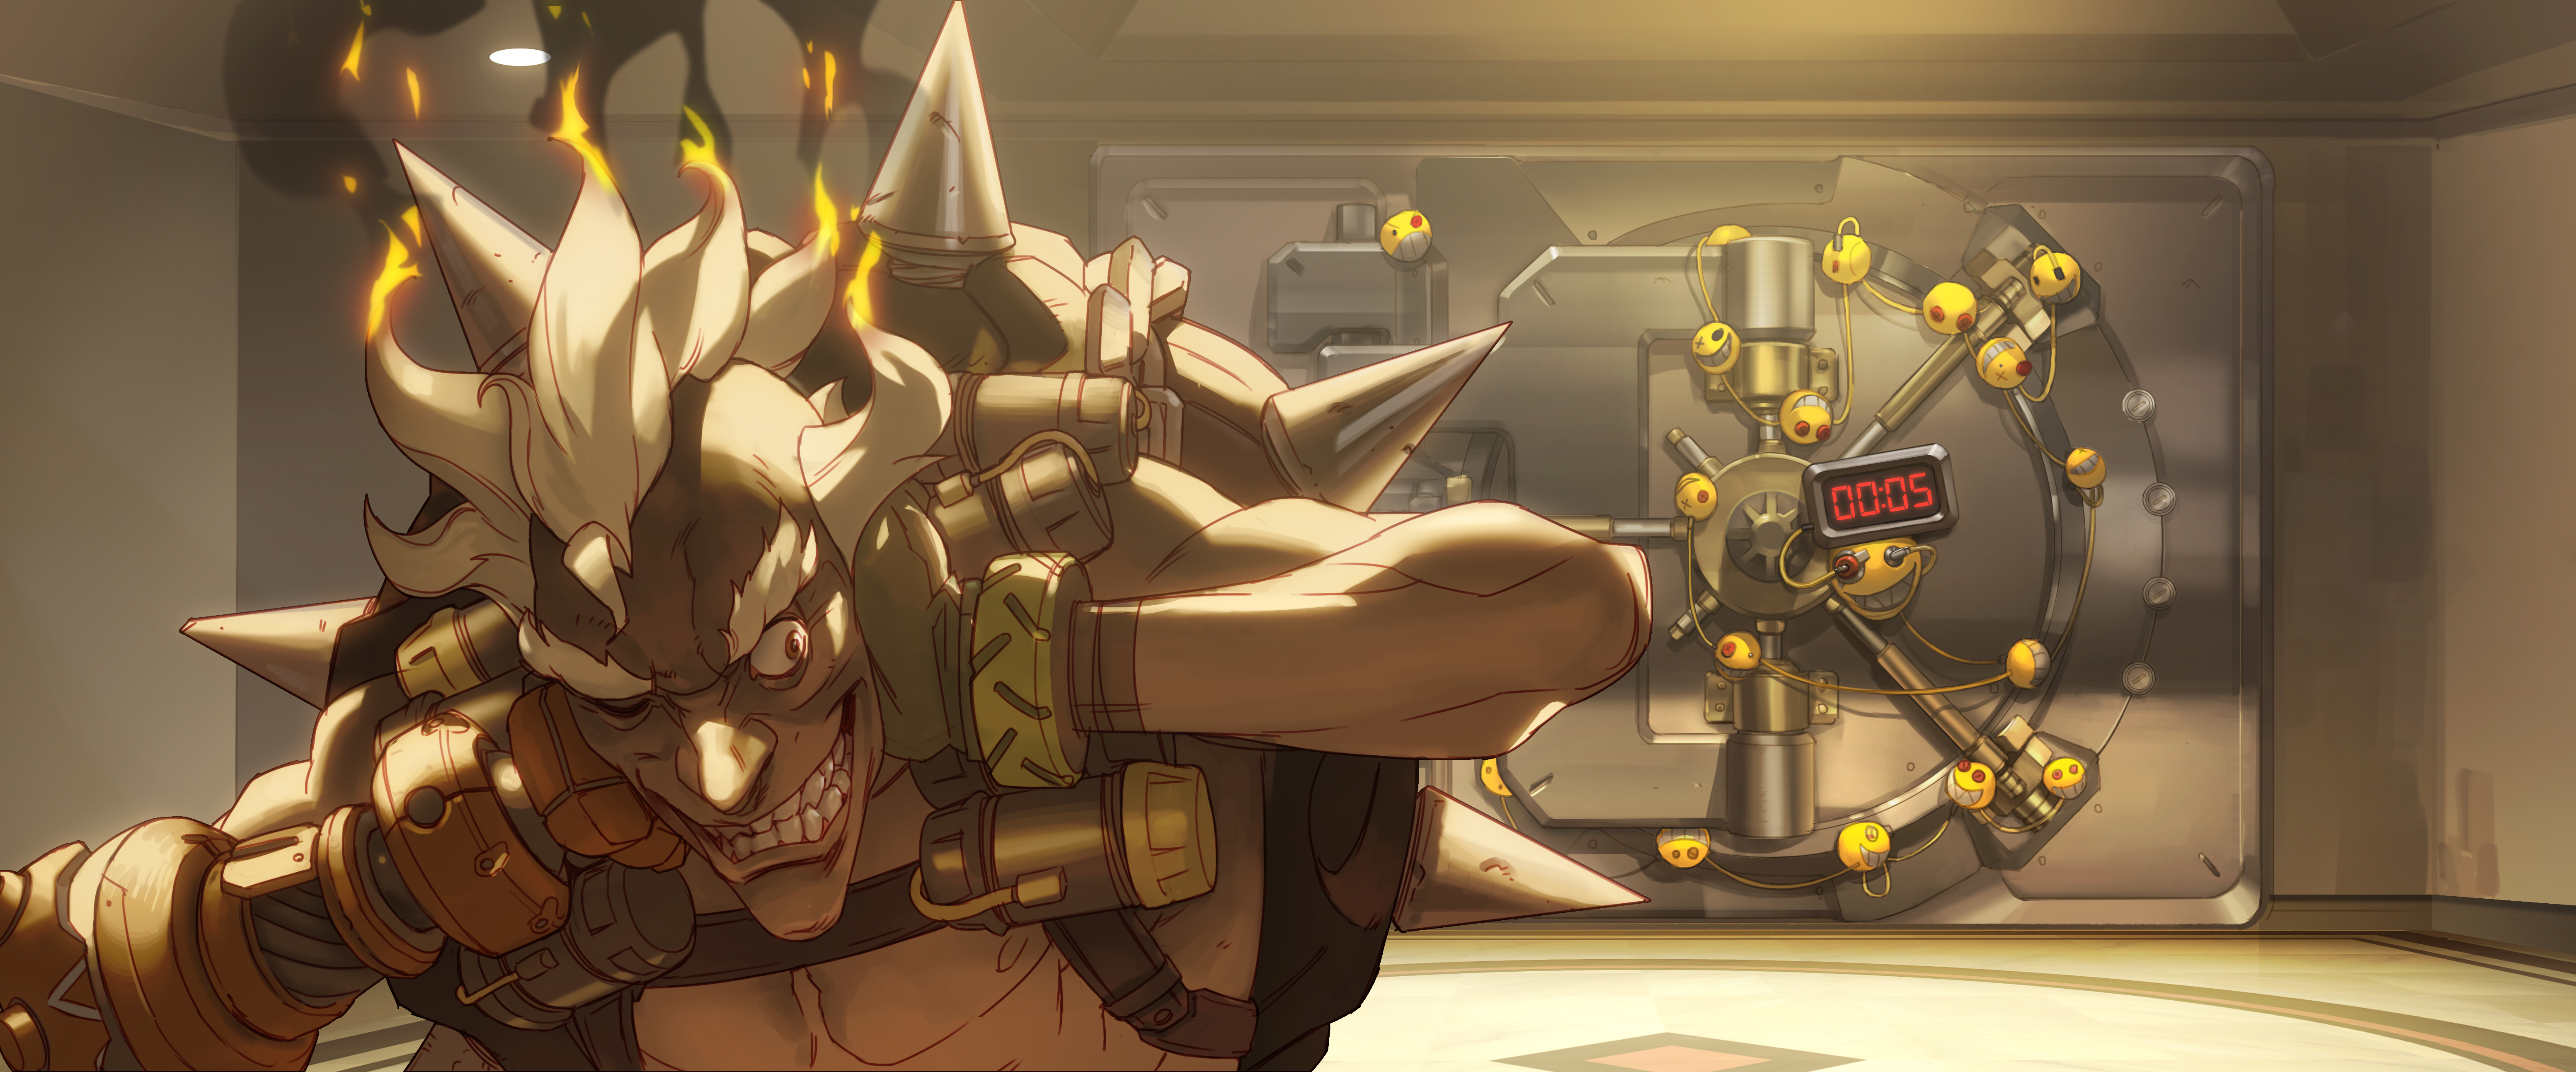 607 4k Ultra Hd Overwatch Wallpapers Background Images Wallpaper Abyss